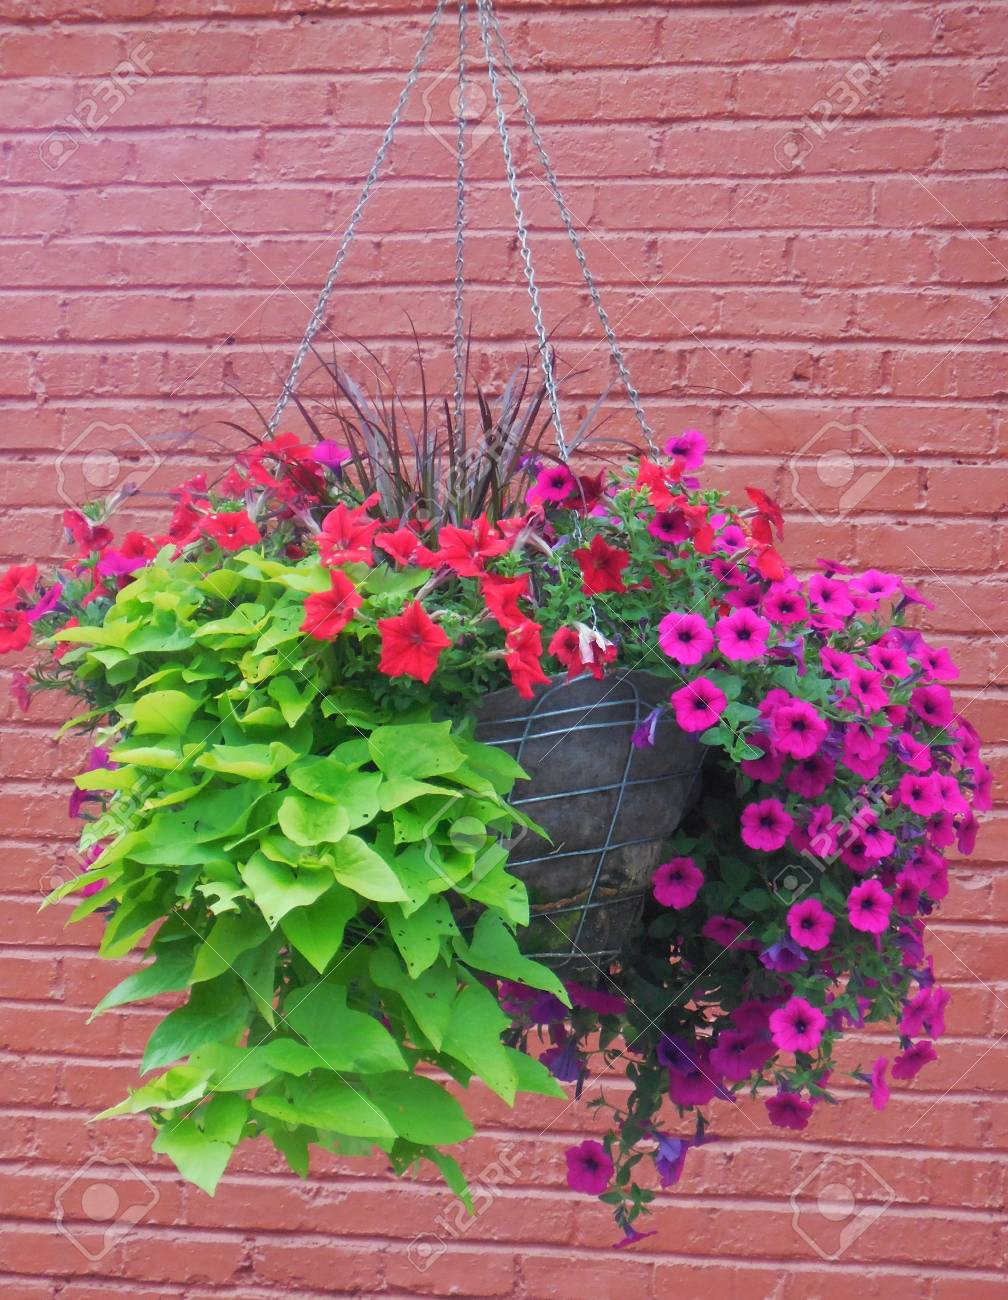 Flowers against a brick wall Stock Photo - 88607253